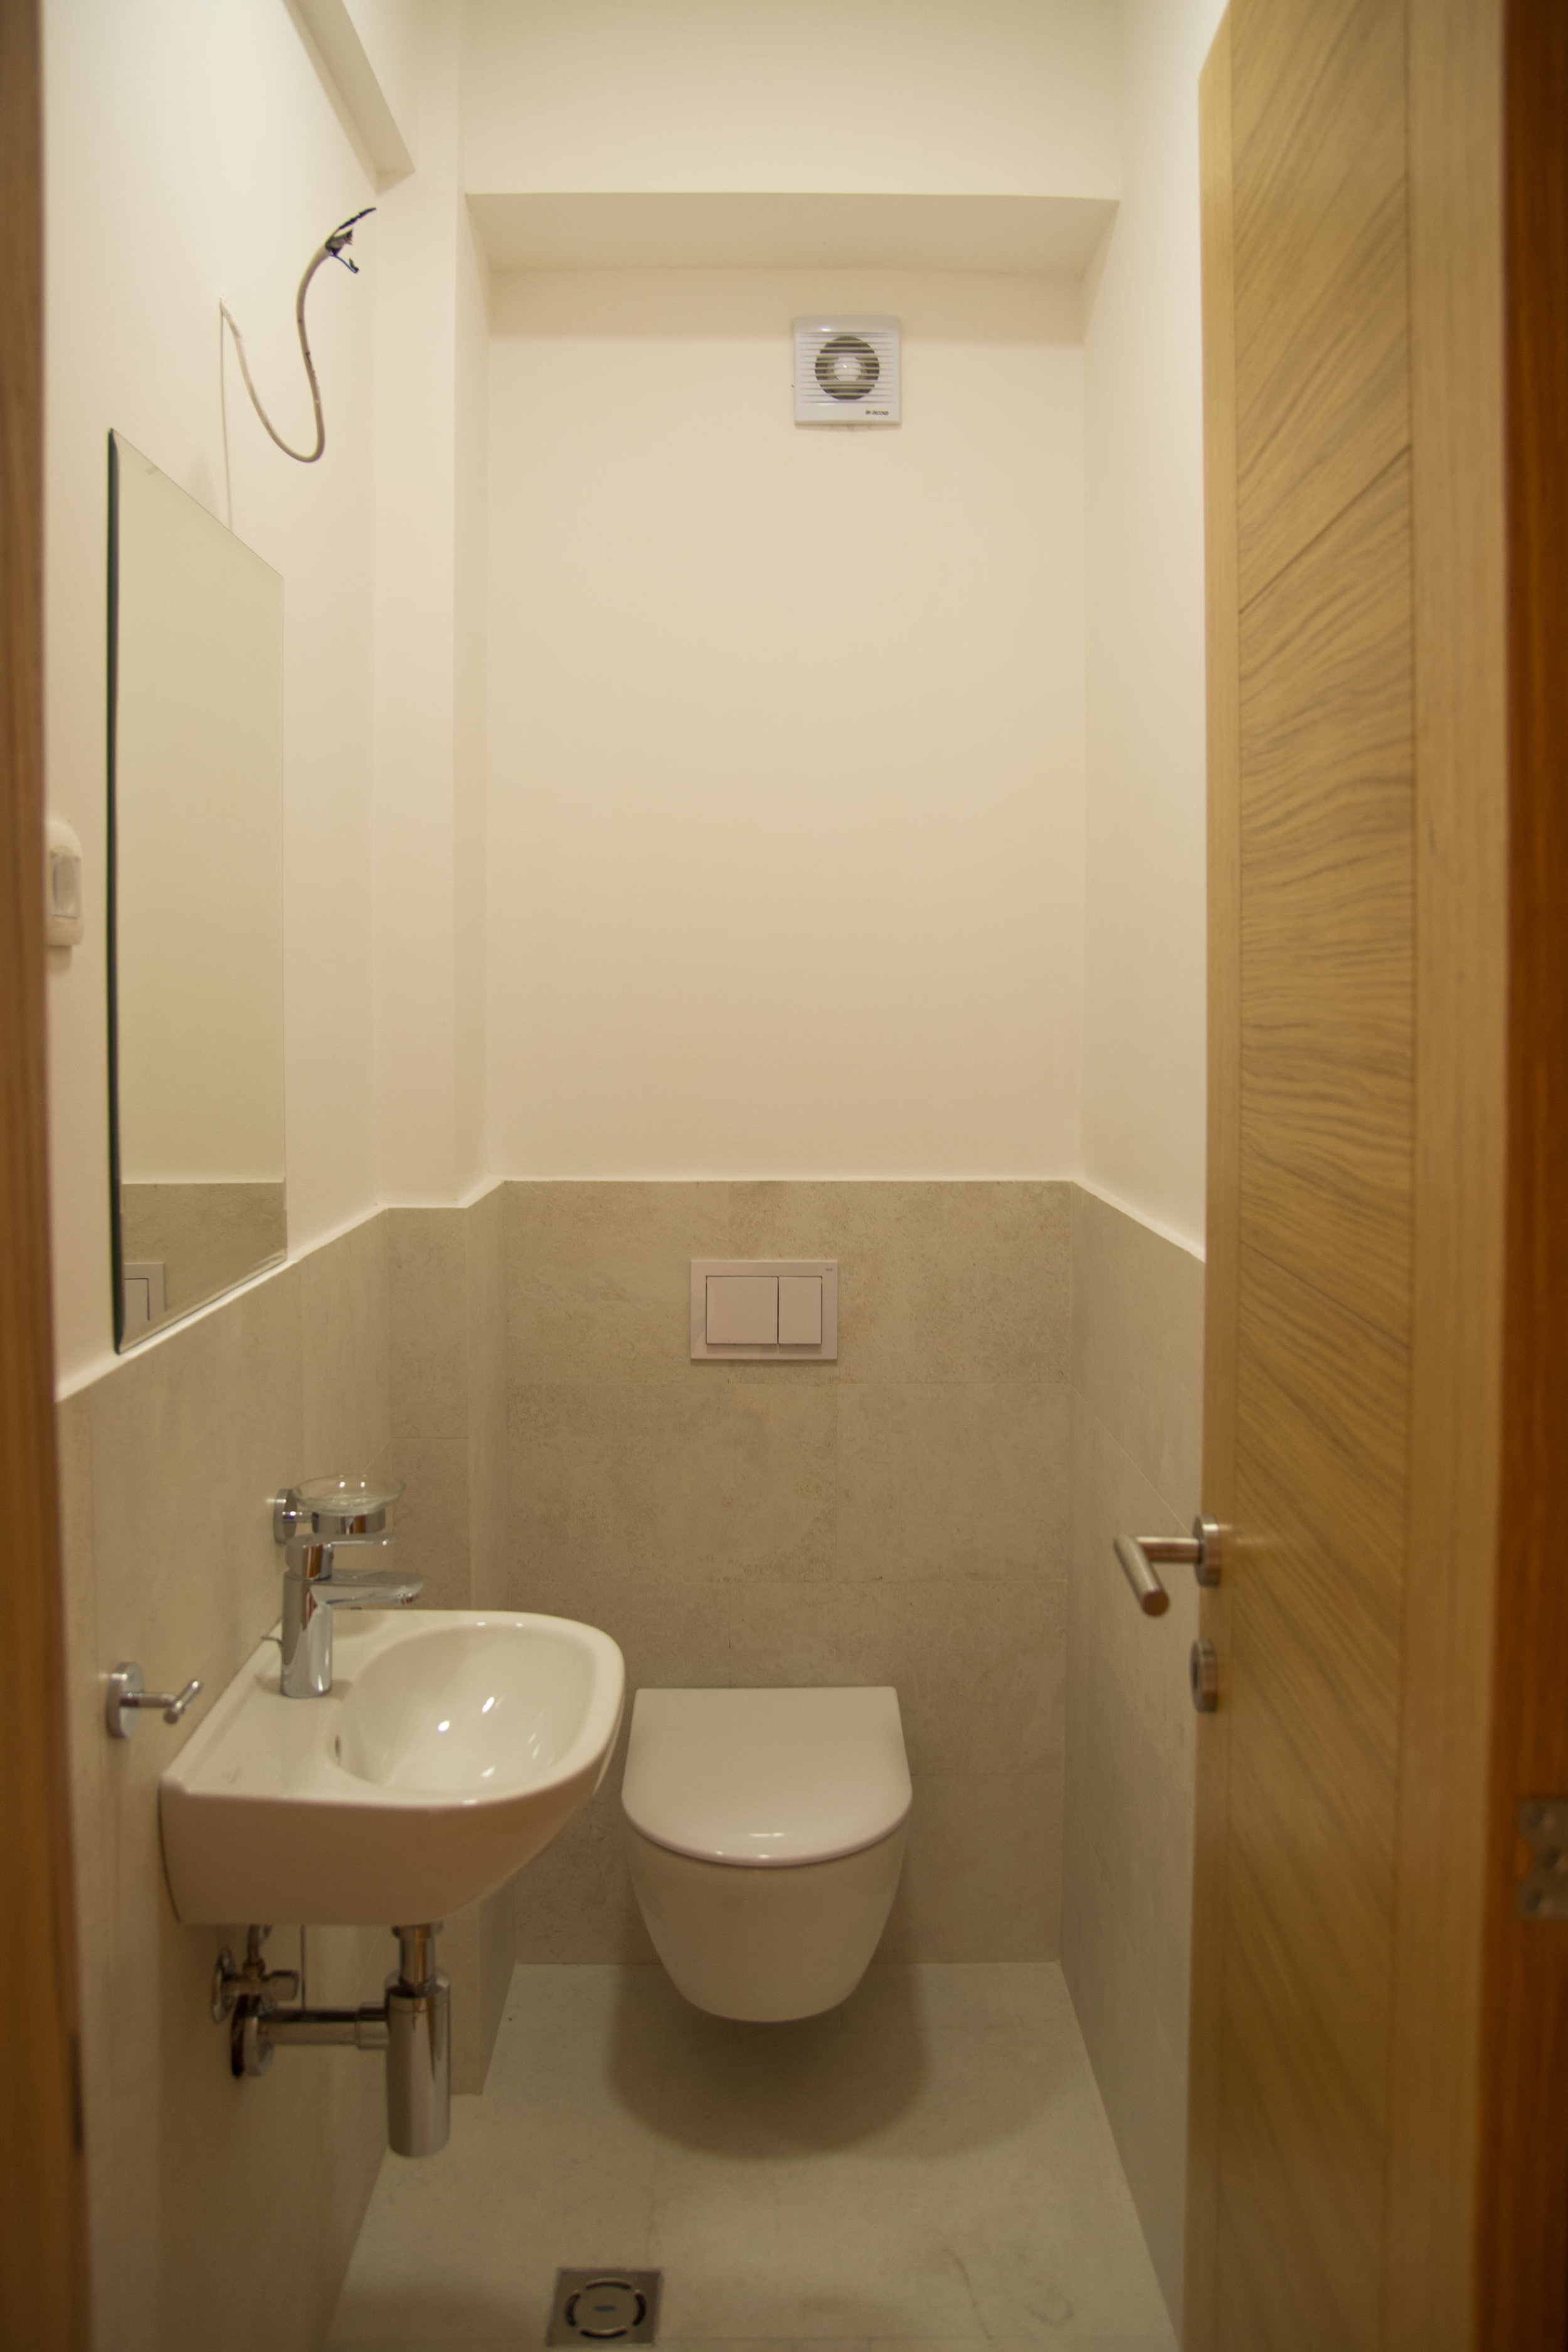 tivat-two-bedroom-apartment-for-sale-property-in-montenegro (5).jpg